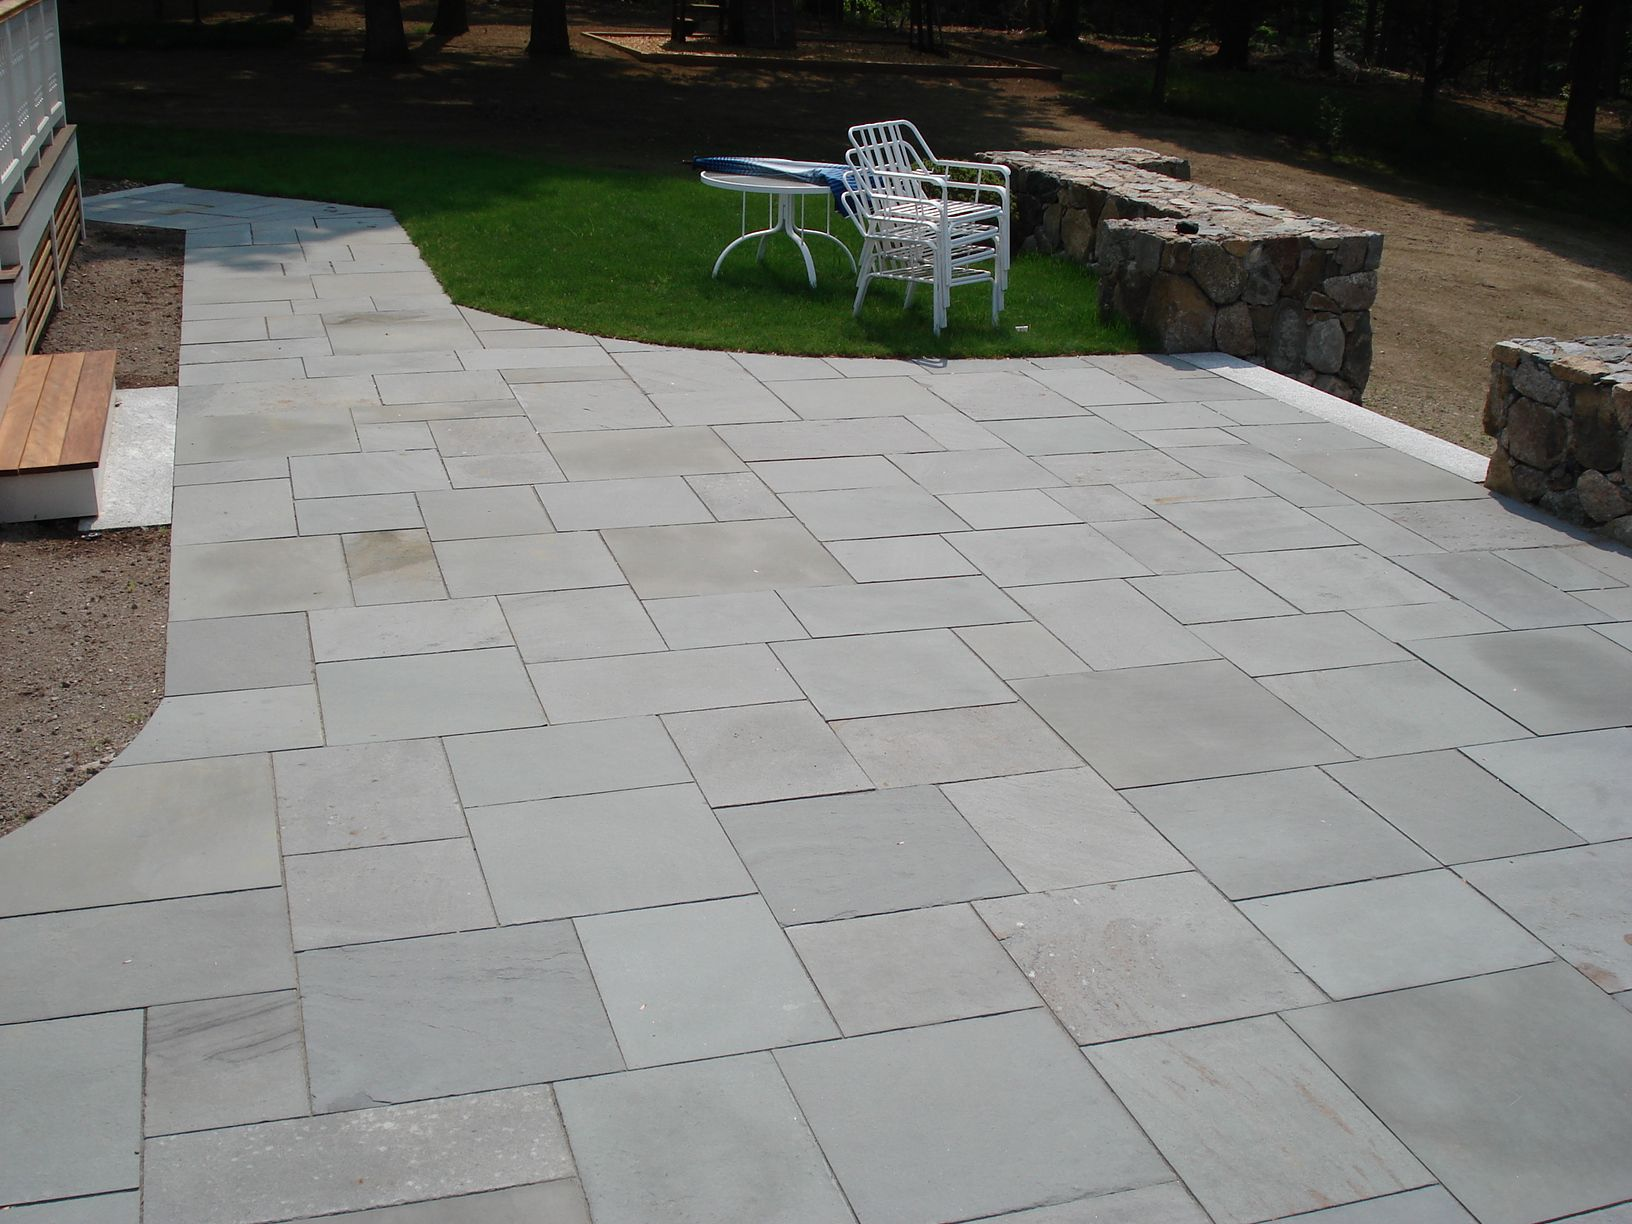 25 great stone patio ideas for your home | stone slab, stone and ... - Rock Patio Designs